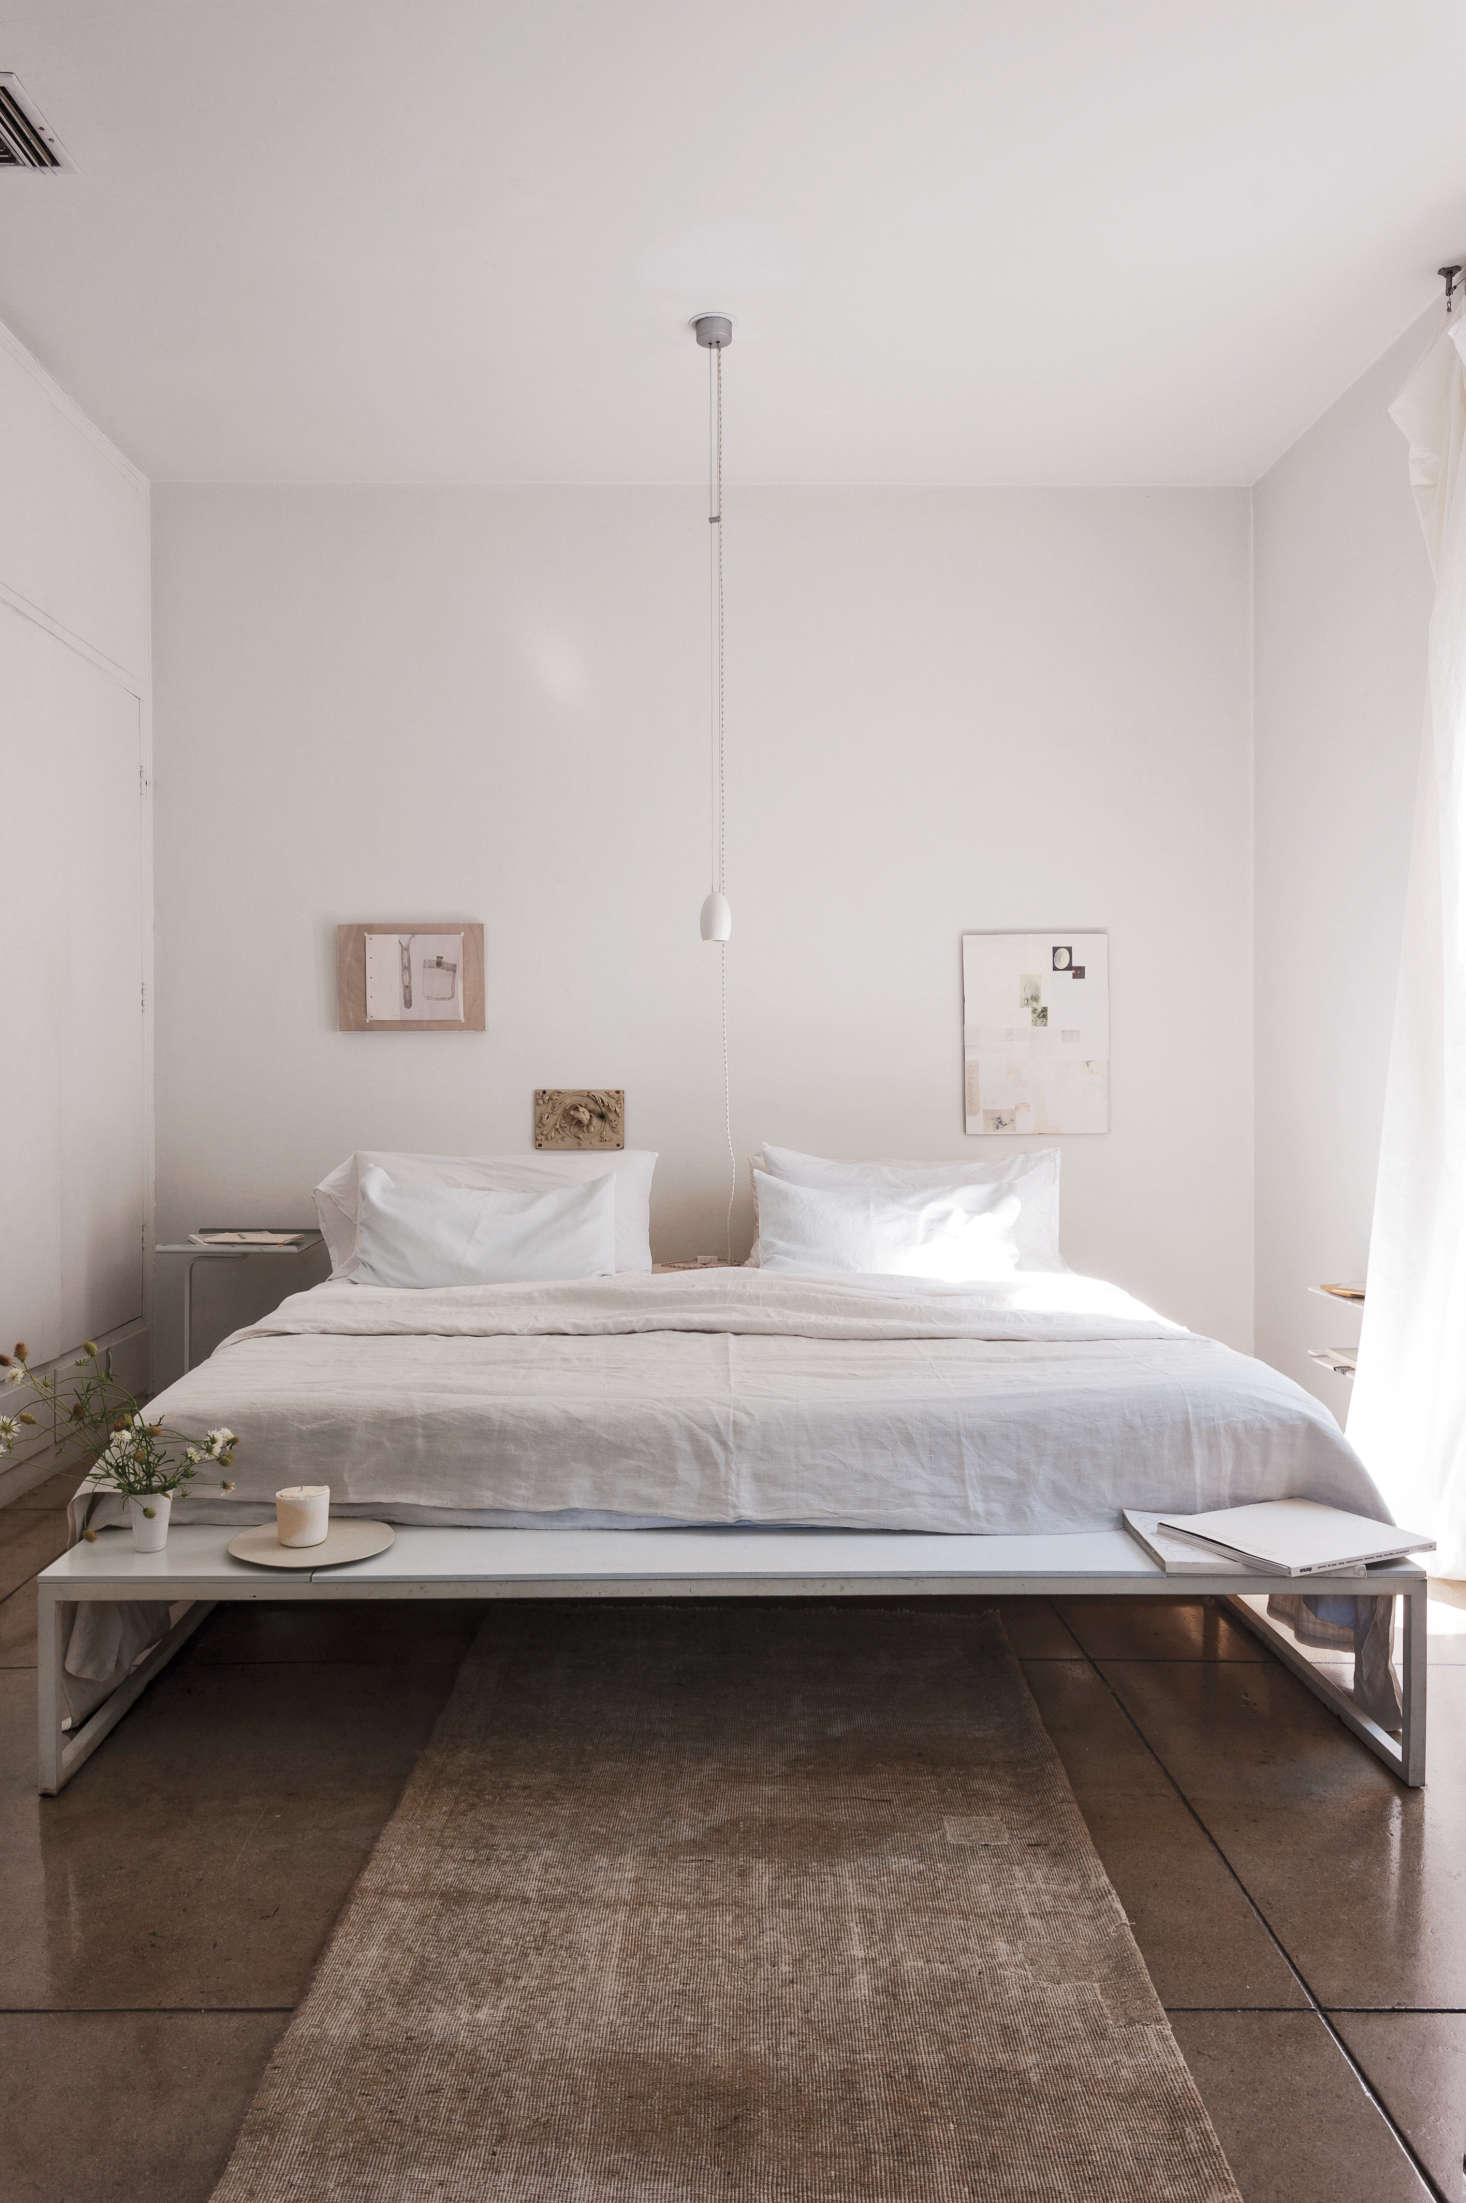 Expert Advice How To Make A Small Bedroom Look Bigger